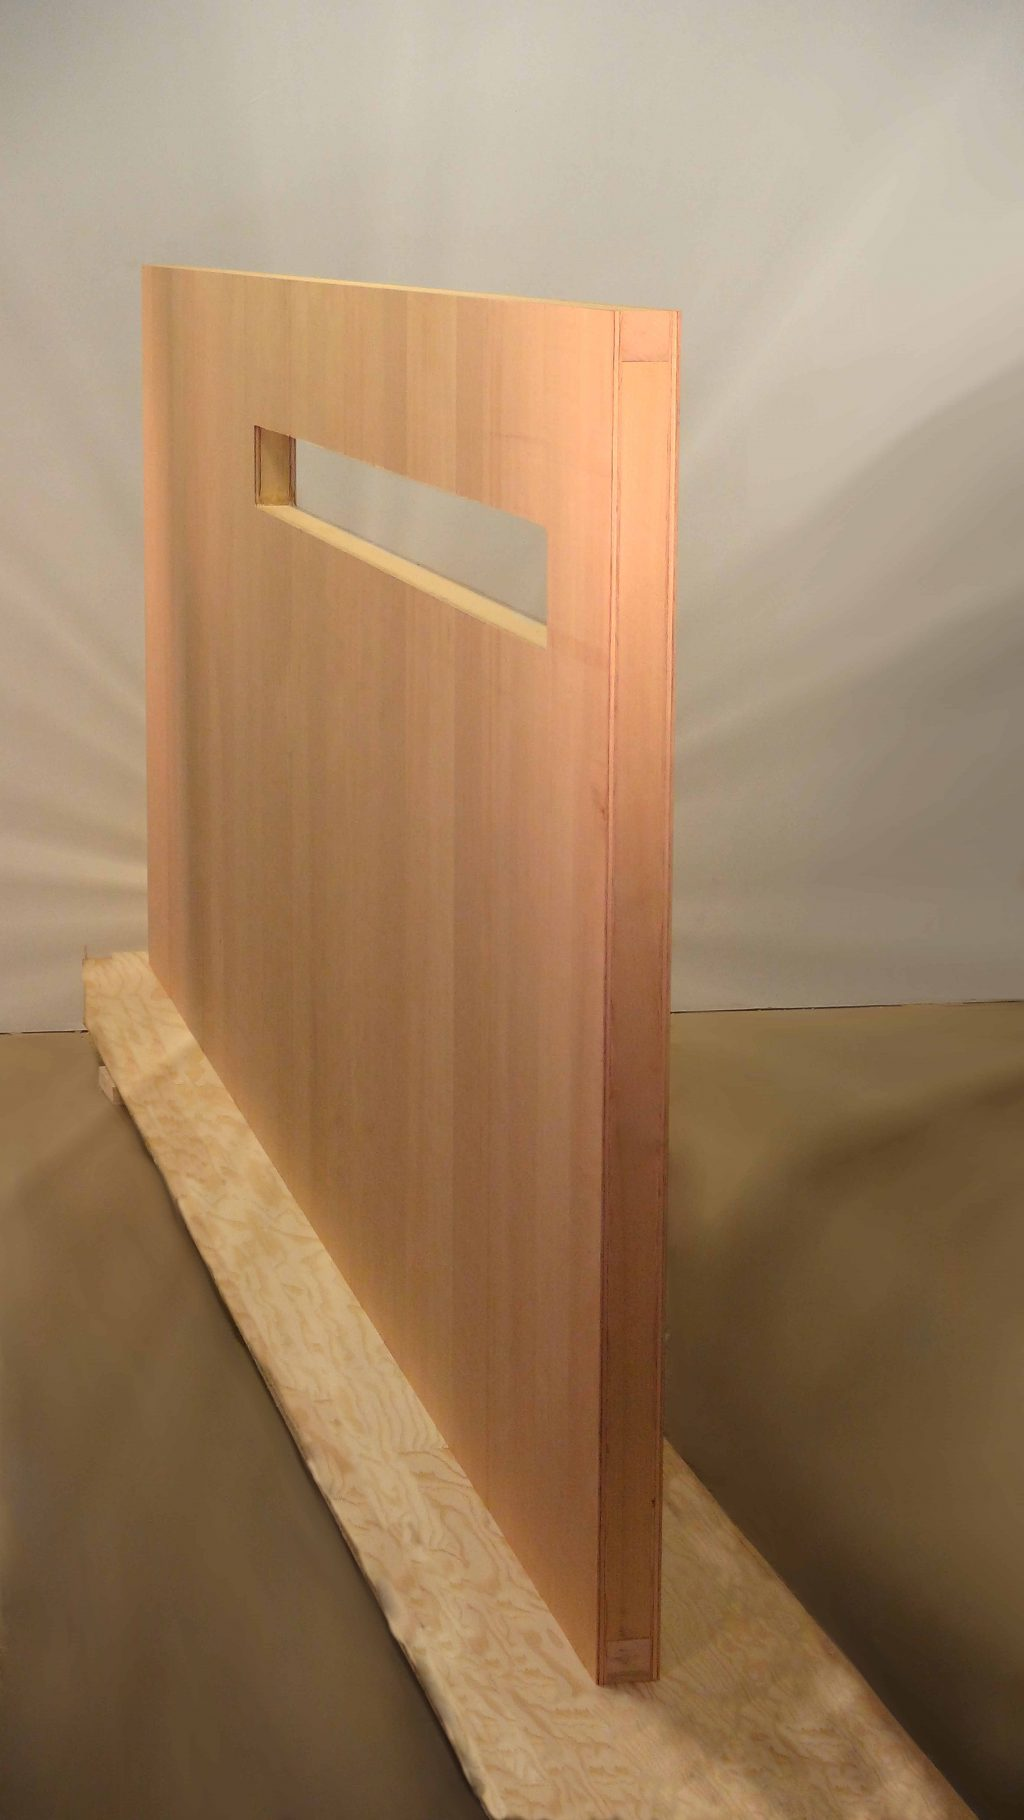 Large Pivot Door warp free wood high strength light weight